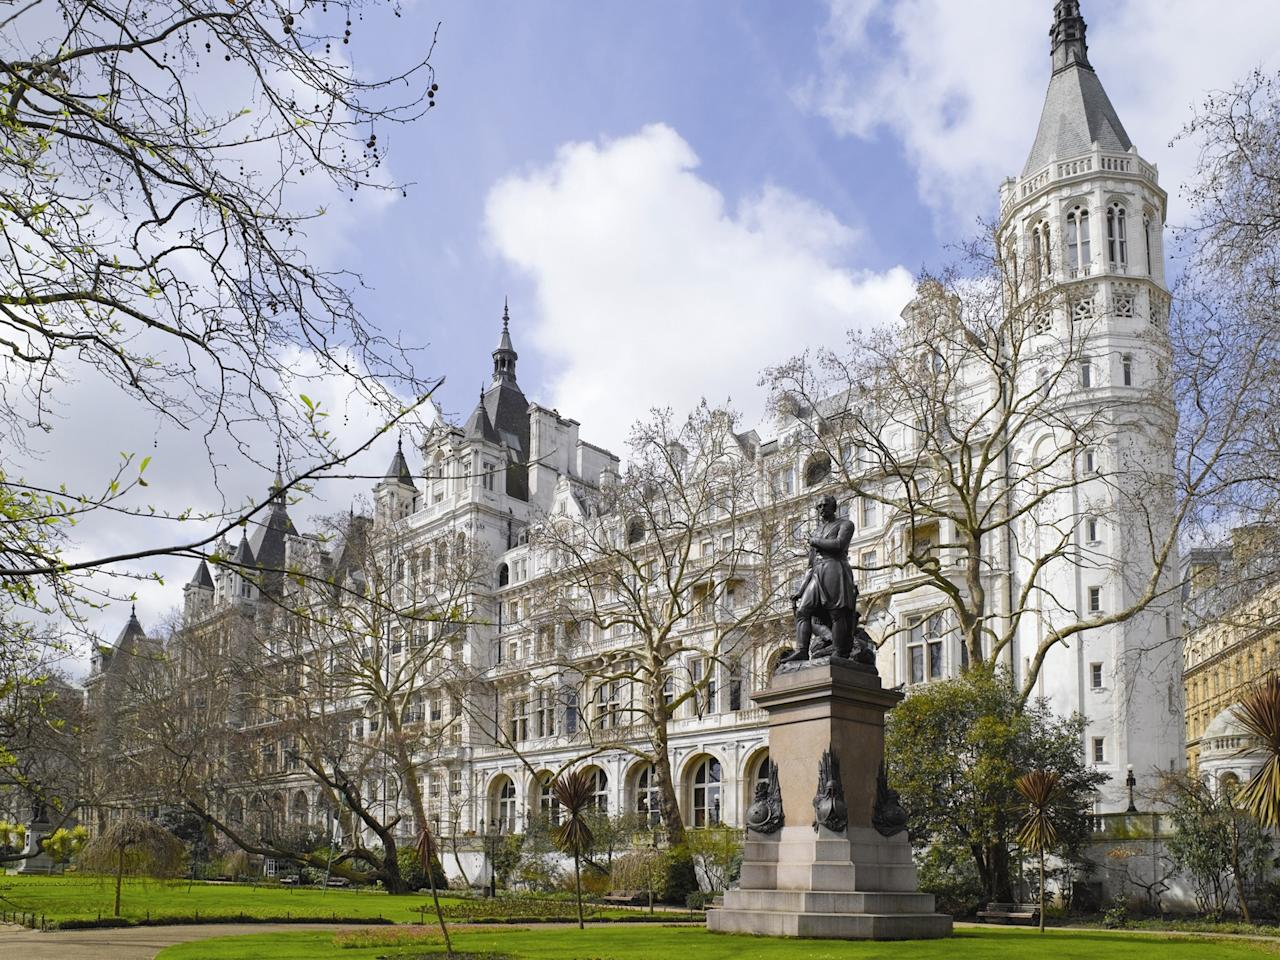 History buffs will want to come here simply for the stories: the hotel occupies former sites of both the National Liberal Club, where Churchill was known to hole up in after a day in Parliament, and the original home of MI6. The biggest suites look right over the Thames, and the Embankment location means guests have some of the city's best sites—including Buckingham Palace and Westminster Abbey—a short walk away.